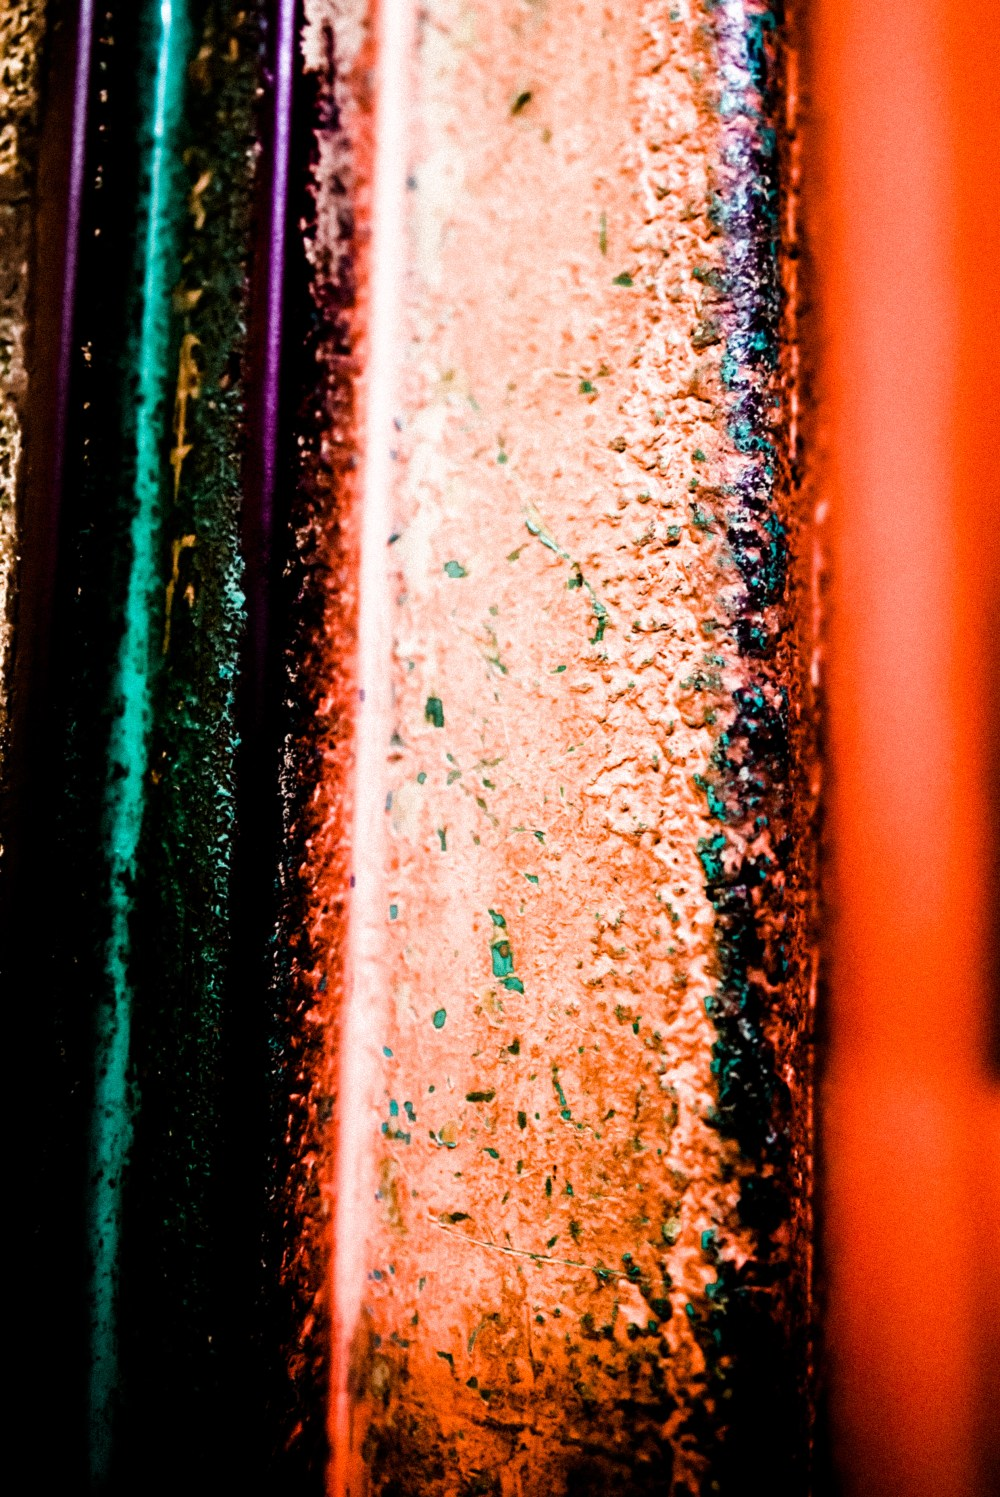 colorful gritty texture